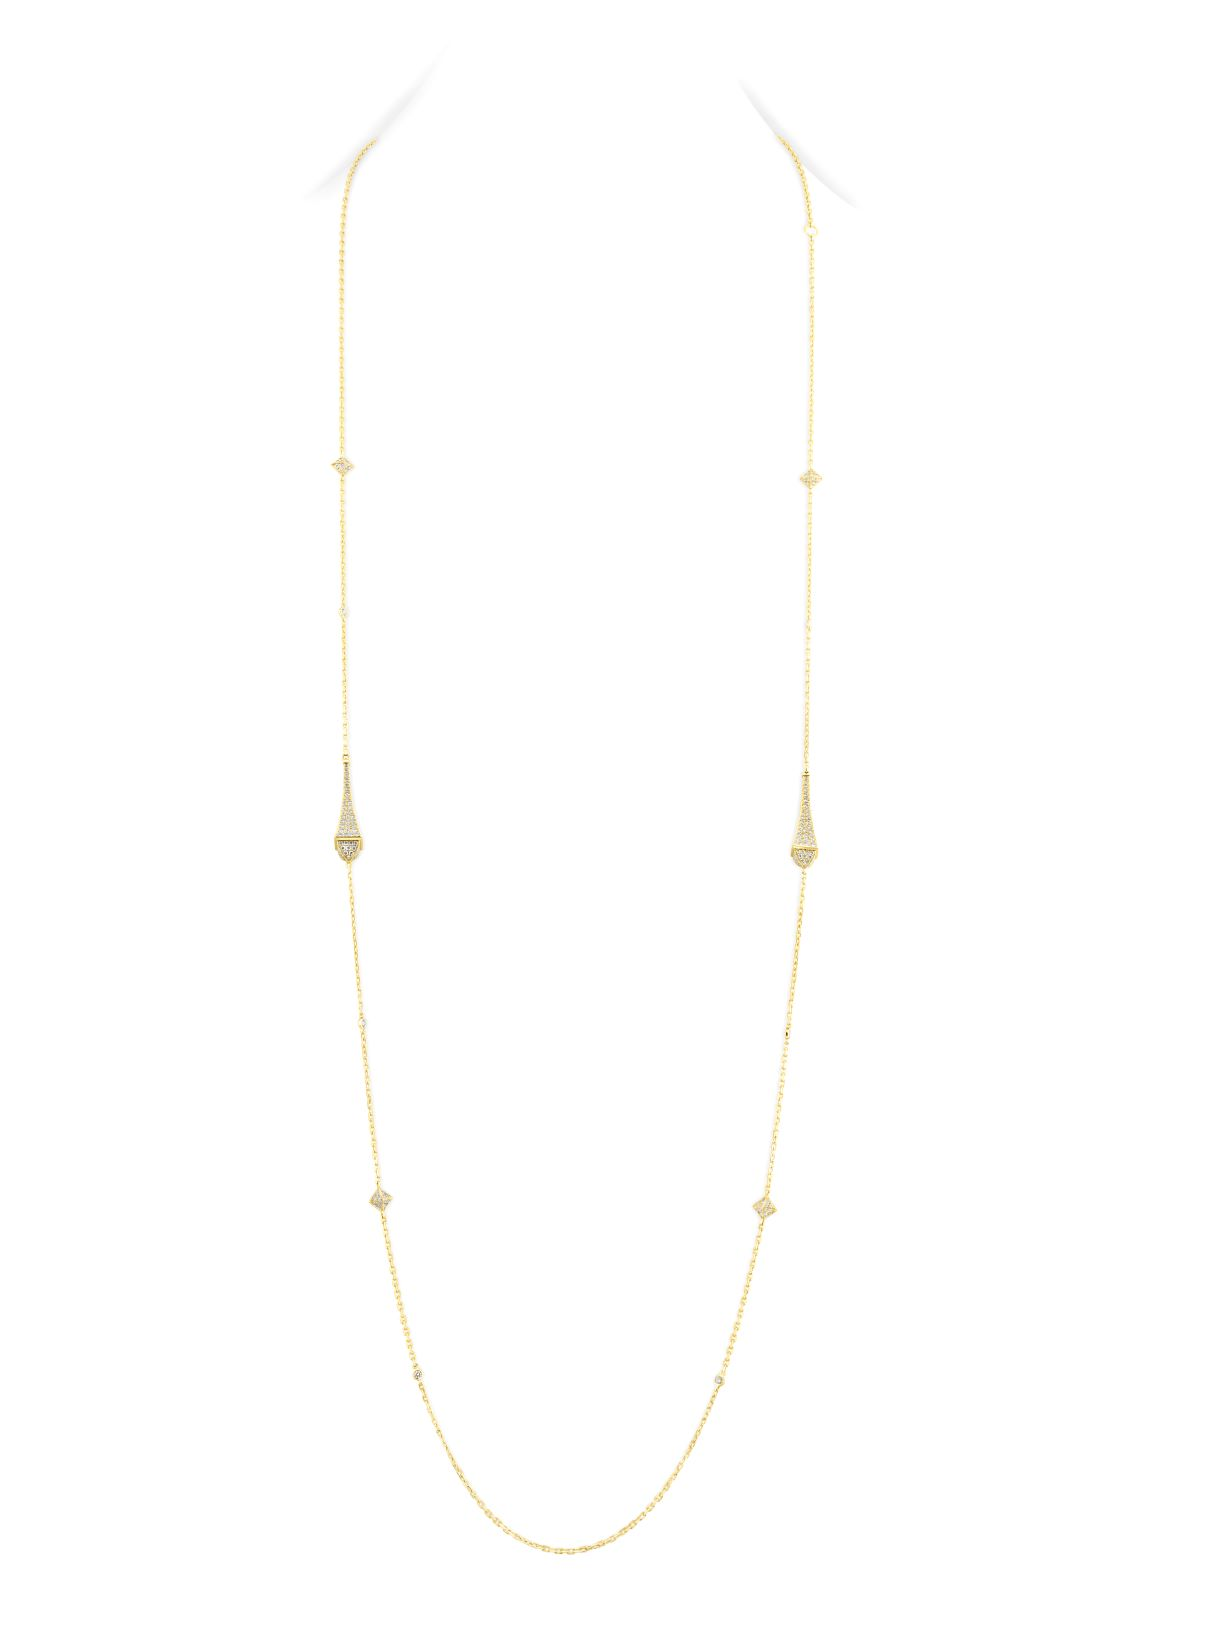 Cleo Long Chain Full Diamond Necklace